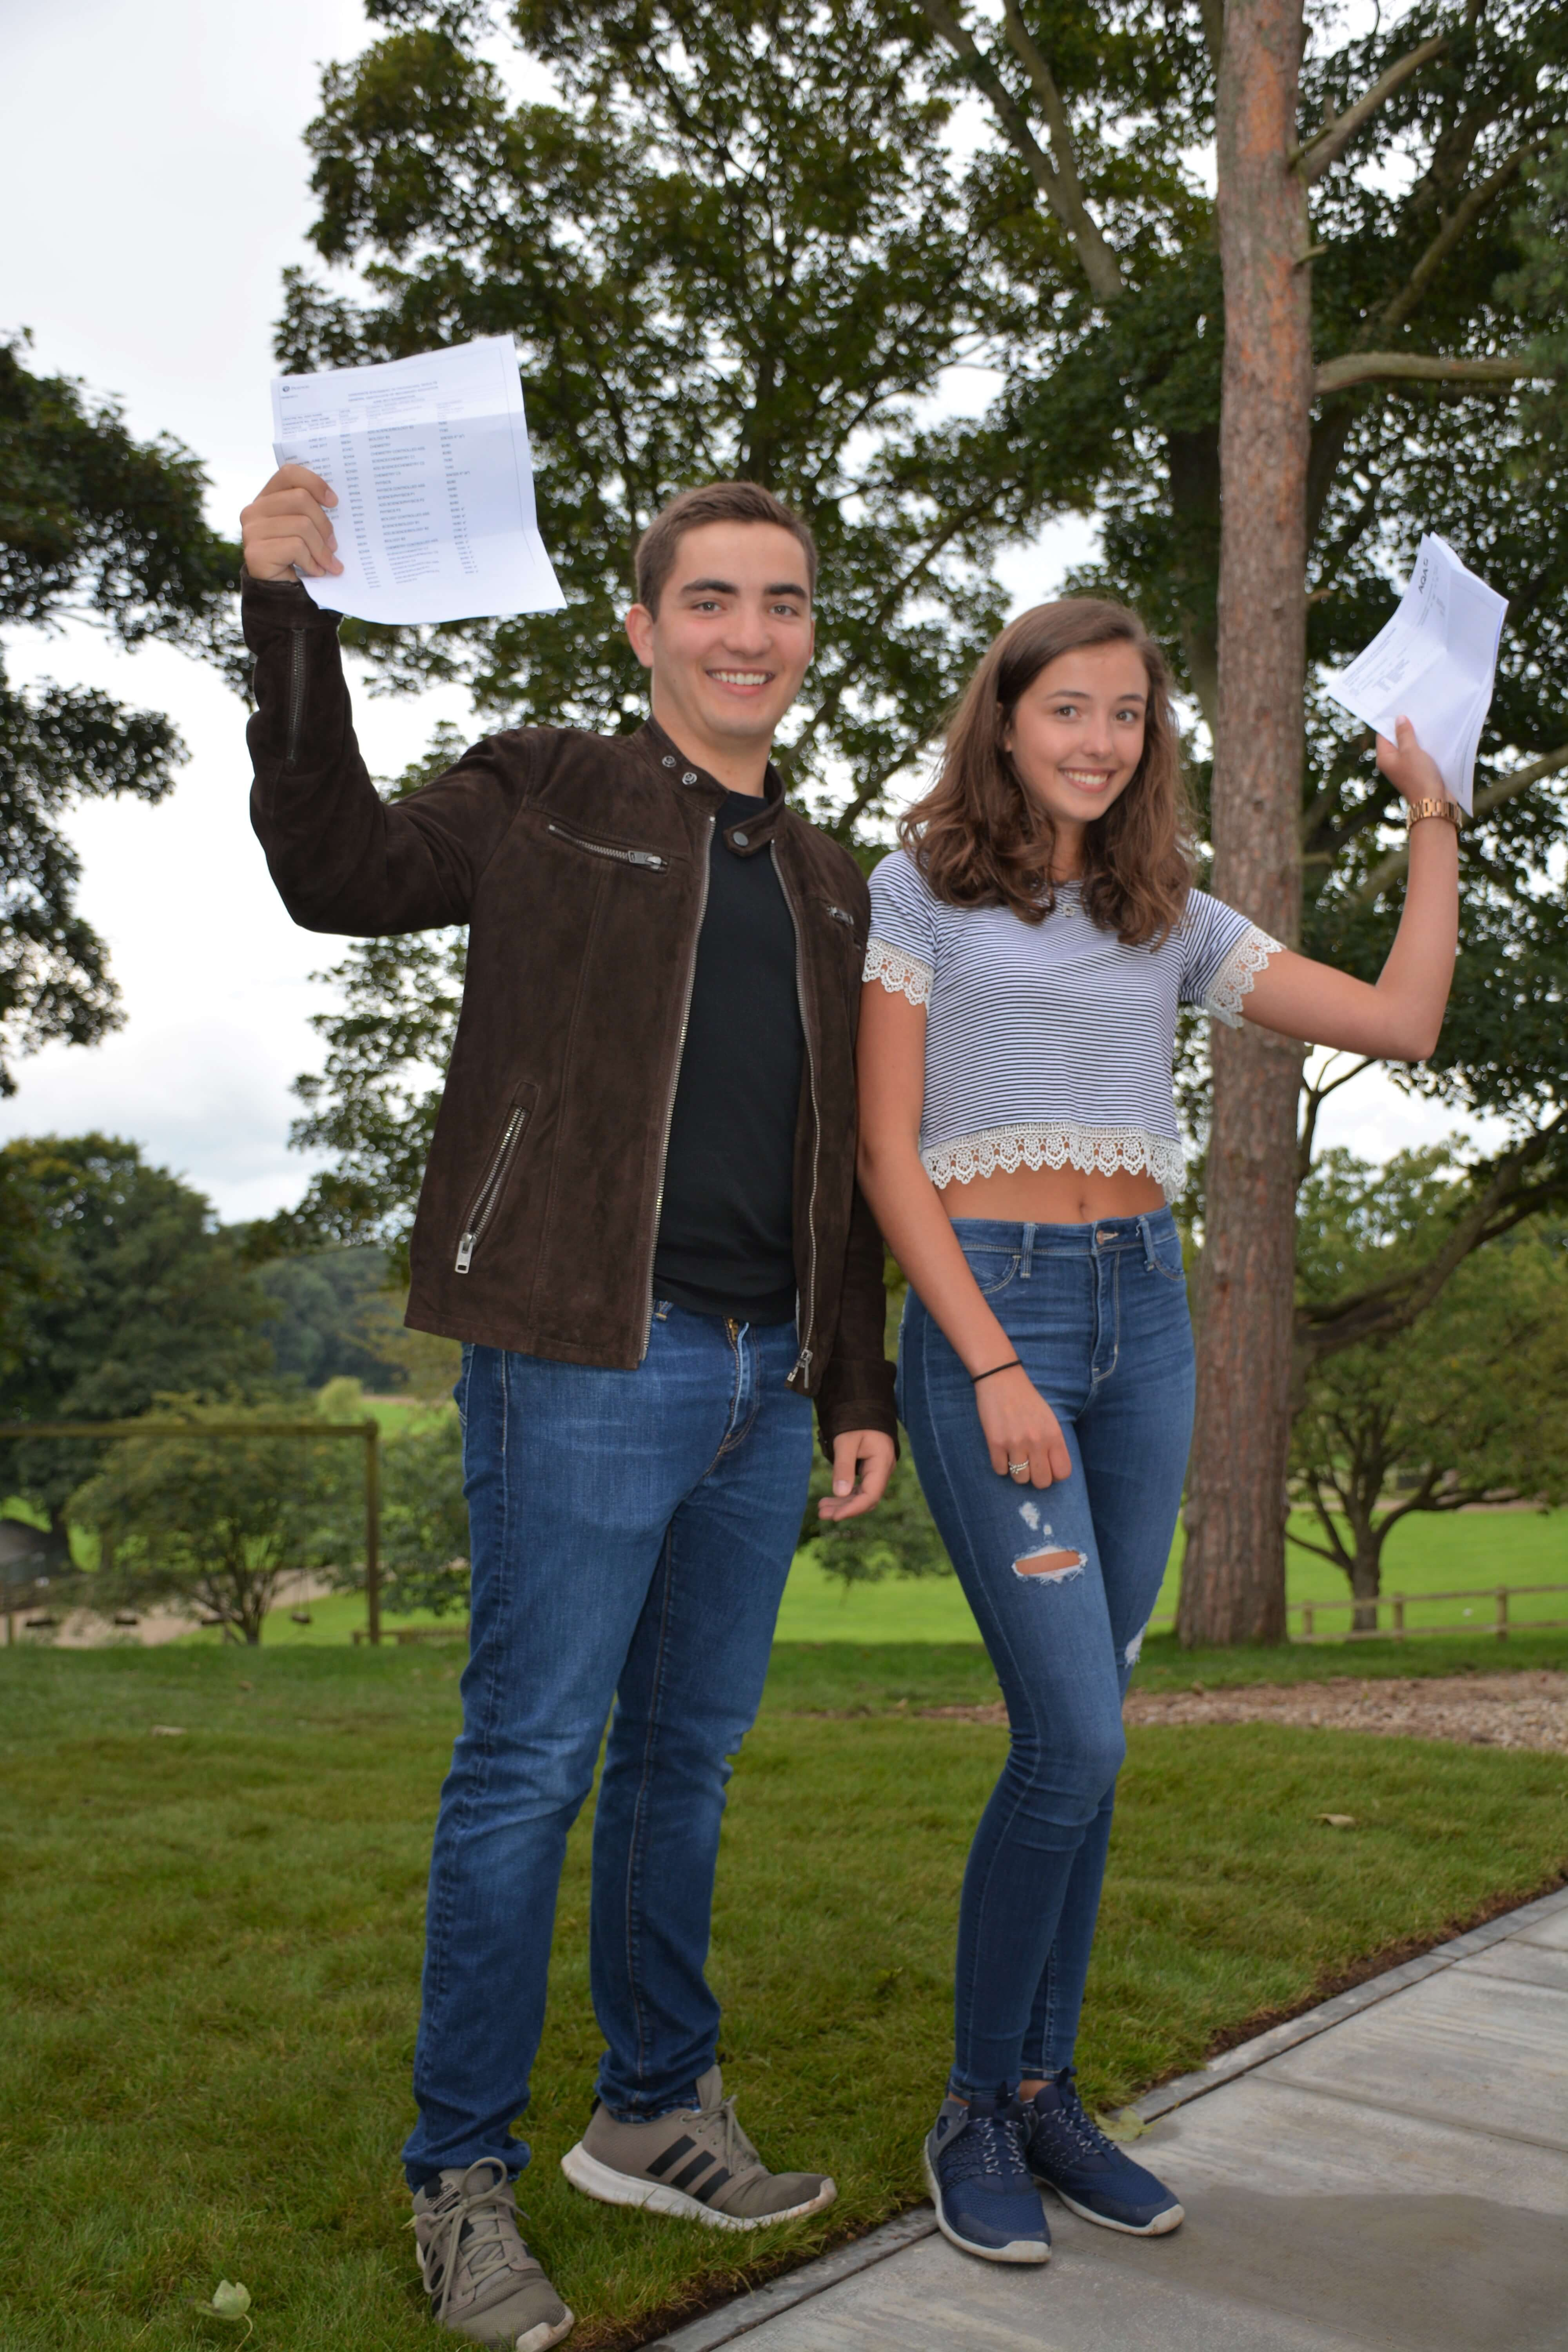 gcse results day 2020 - photo #39